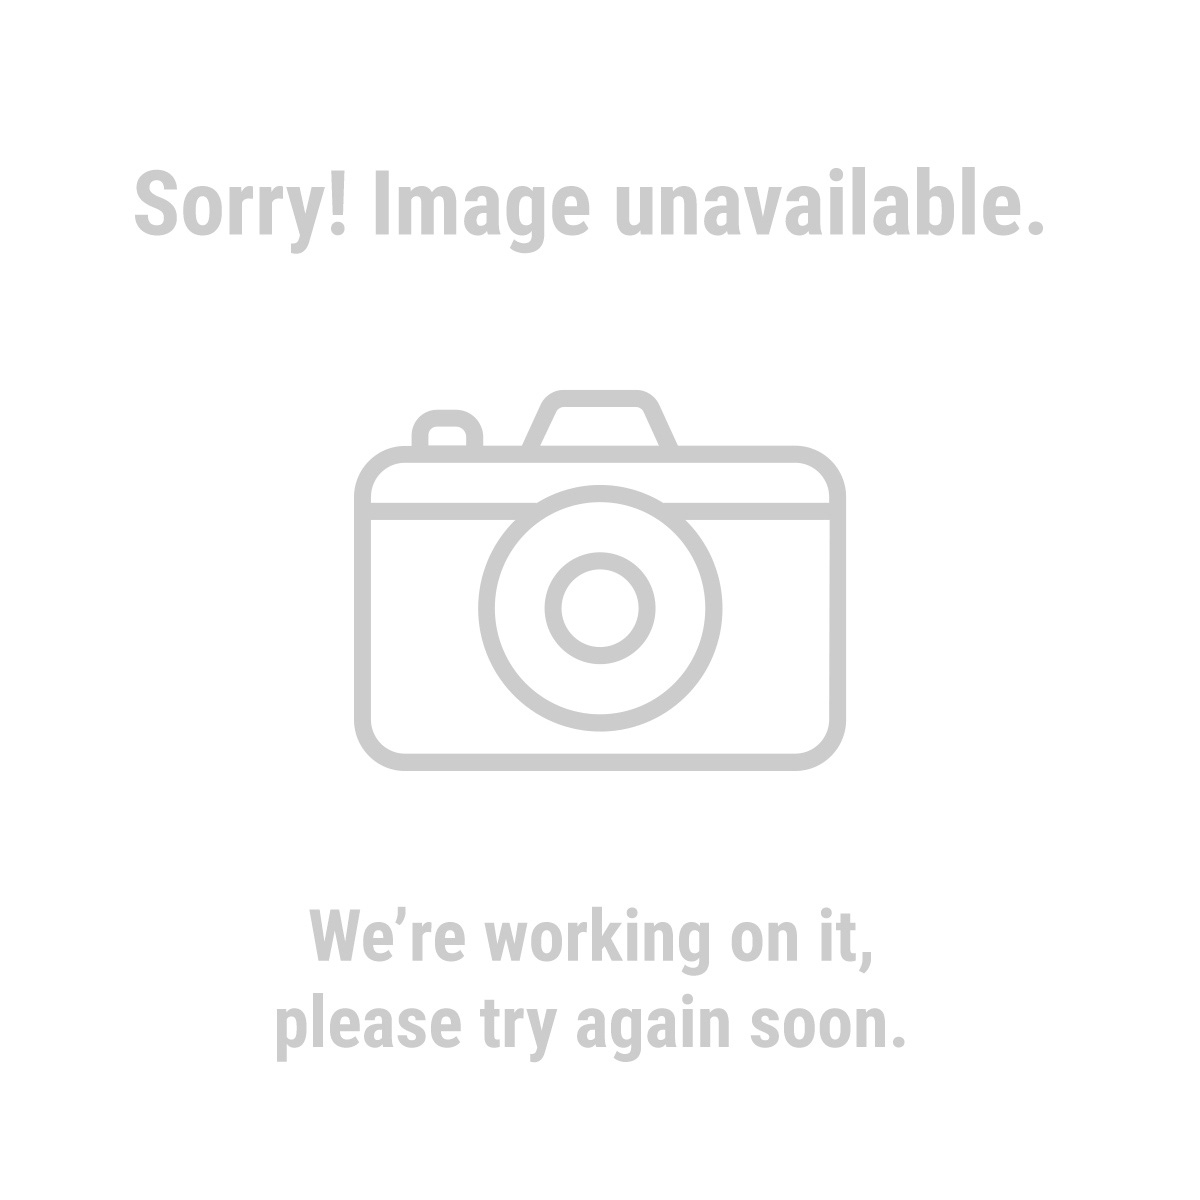 Thunderbolt Magnum 93858 6 Volt Lantern with Battery